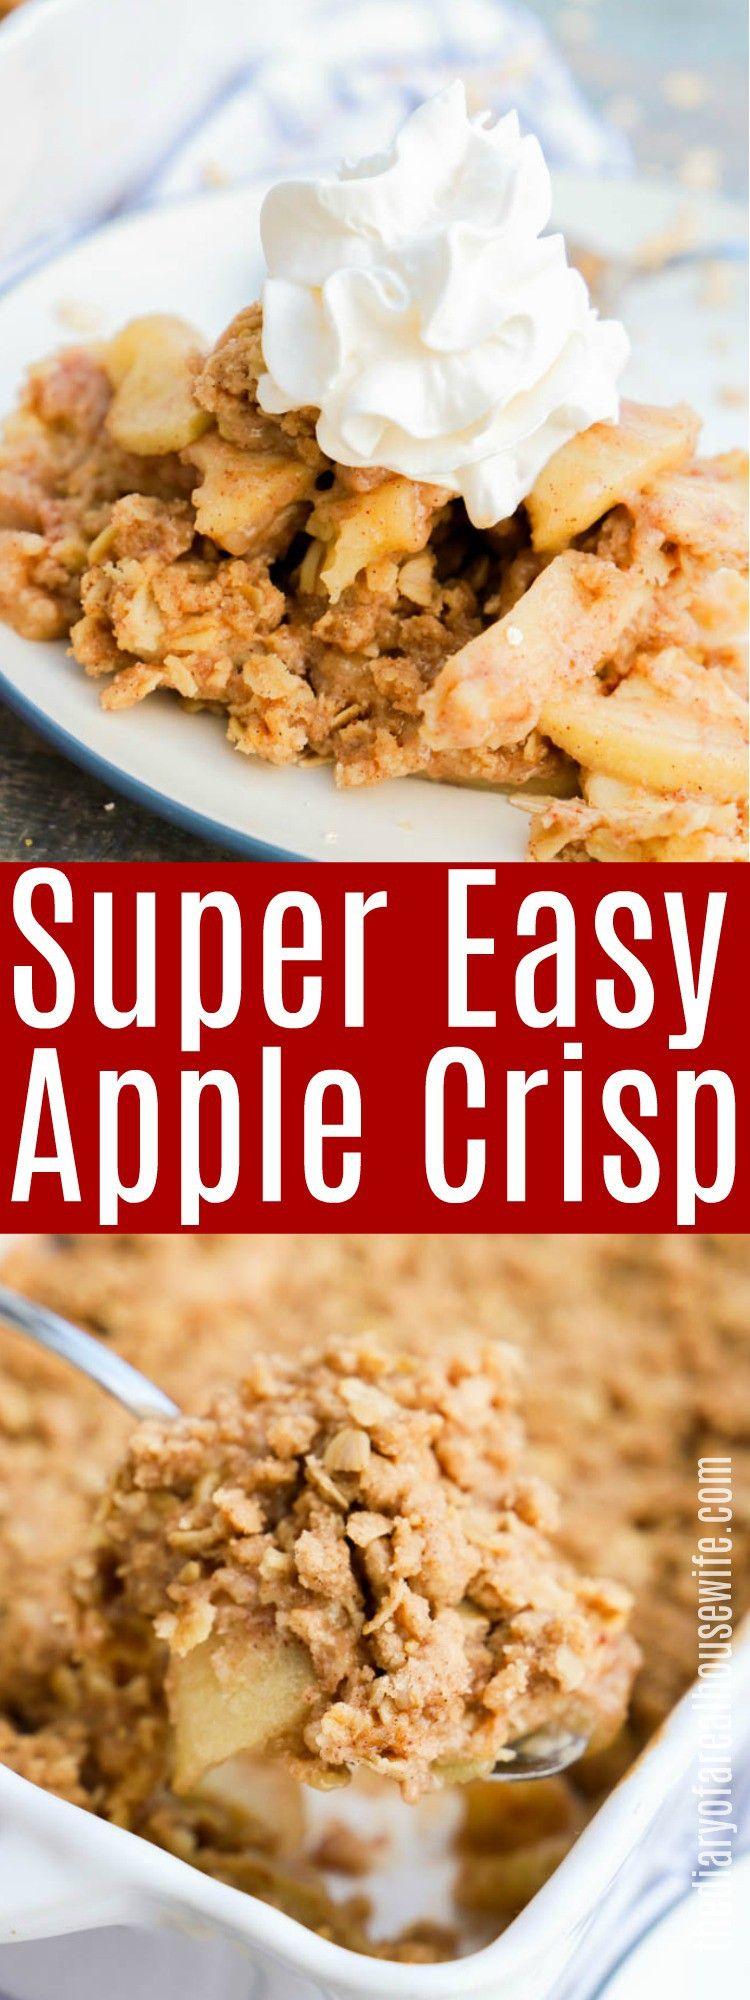 Easy apple crisp the diary of a real housewife apple